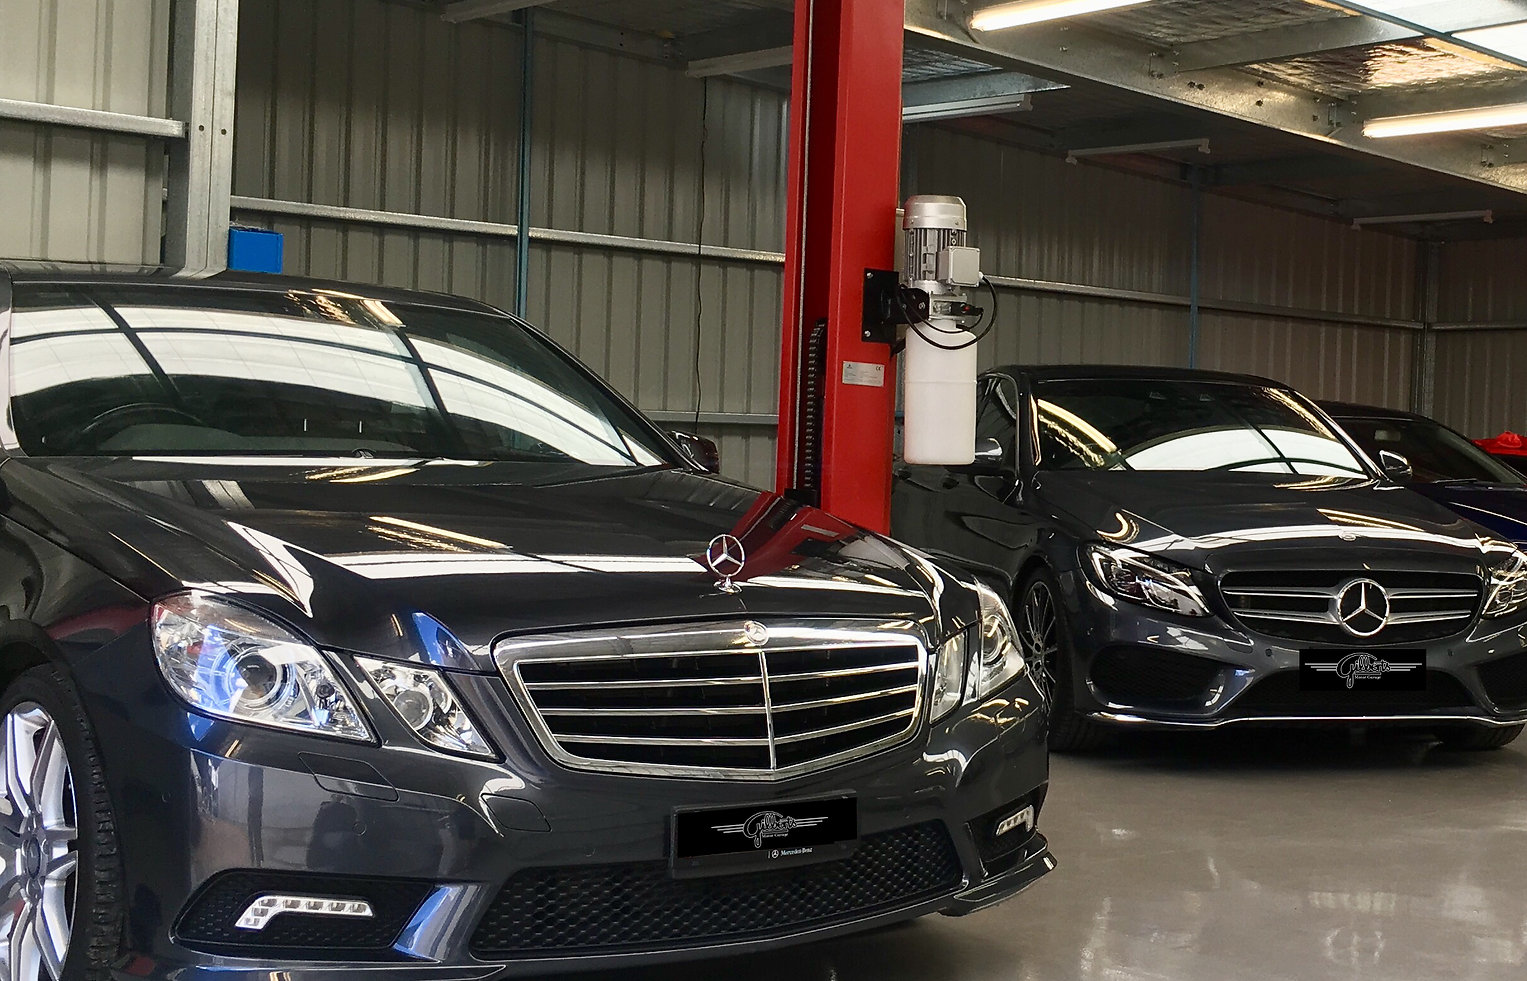 Gilberts Motor Garage European service and repair. Mercedes, BMW, Volvo, Audi, VW, Alfa, Saab, Citroen, Peugeot